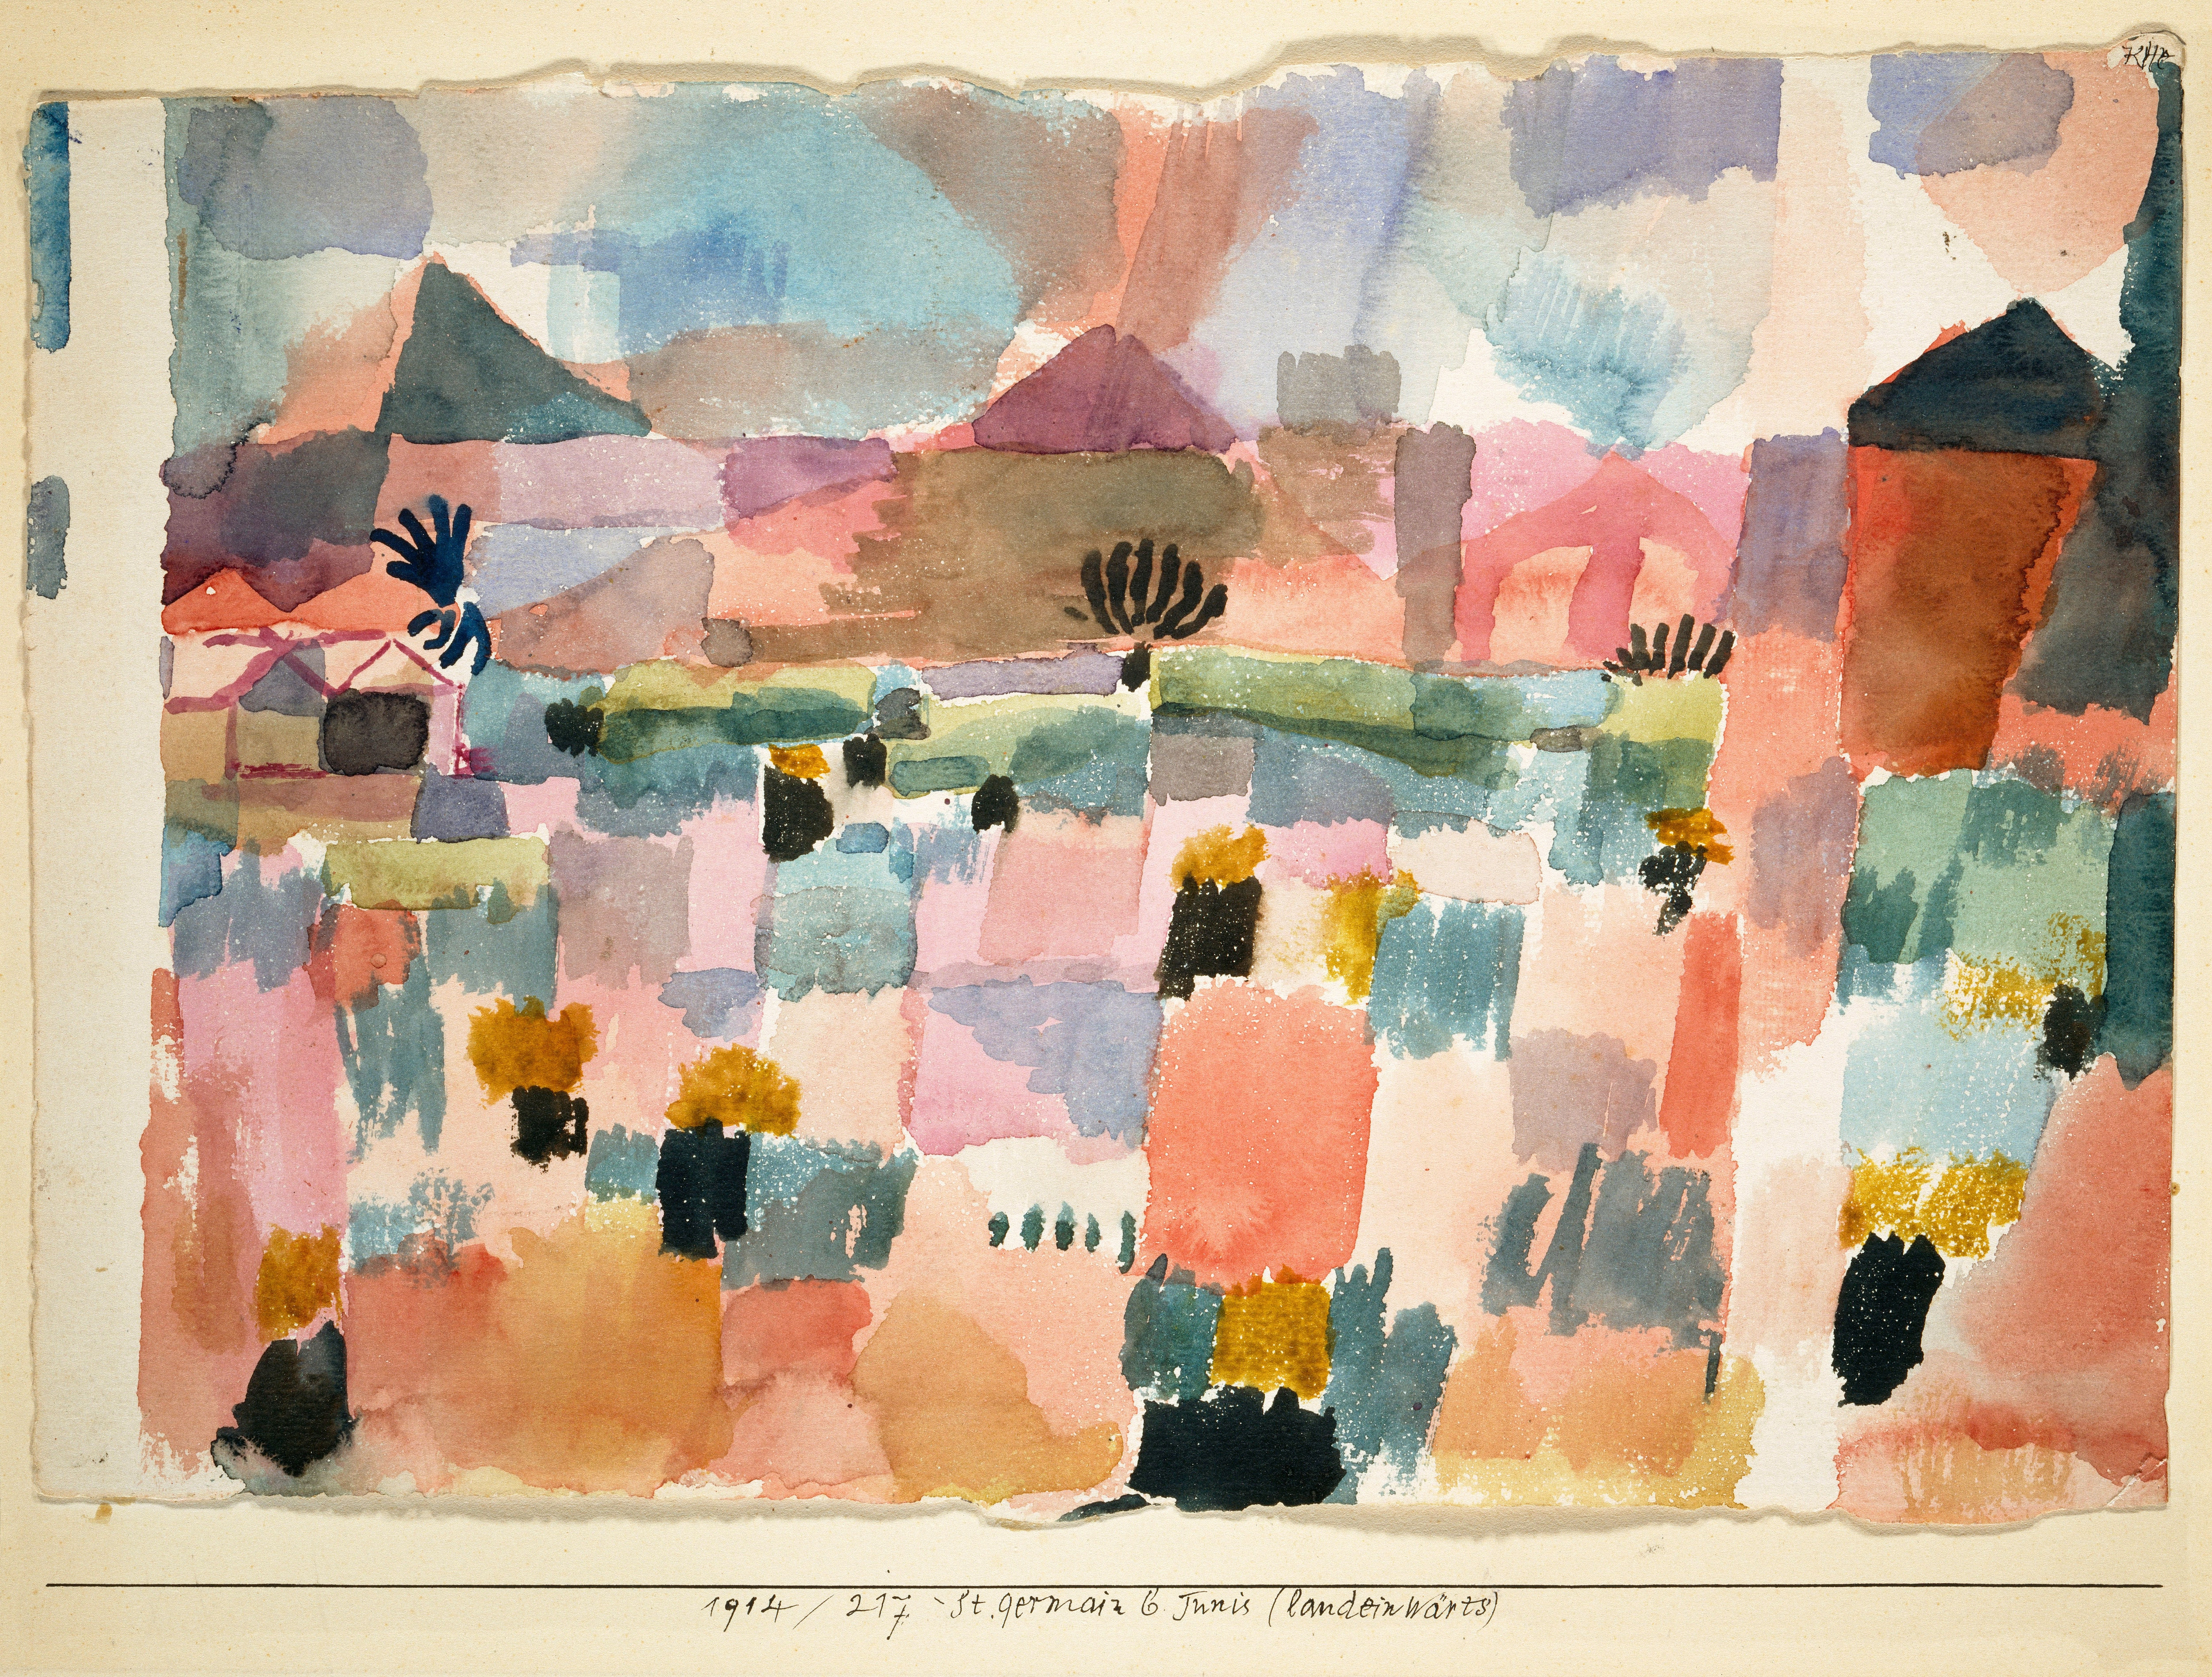 Paul Klee: Saint-Germain near Tunis, 1914